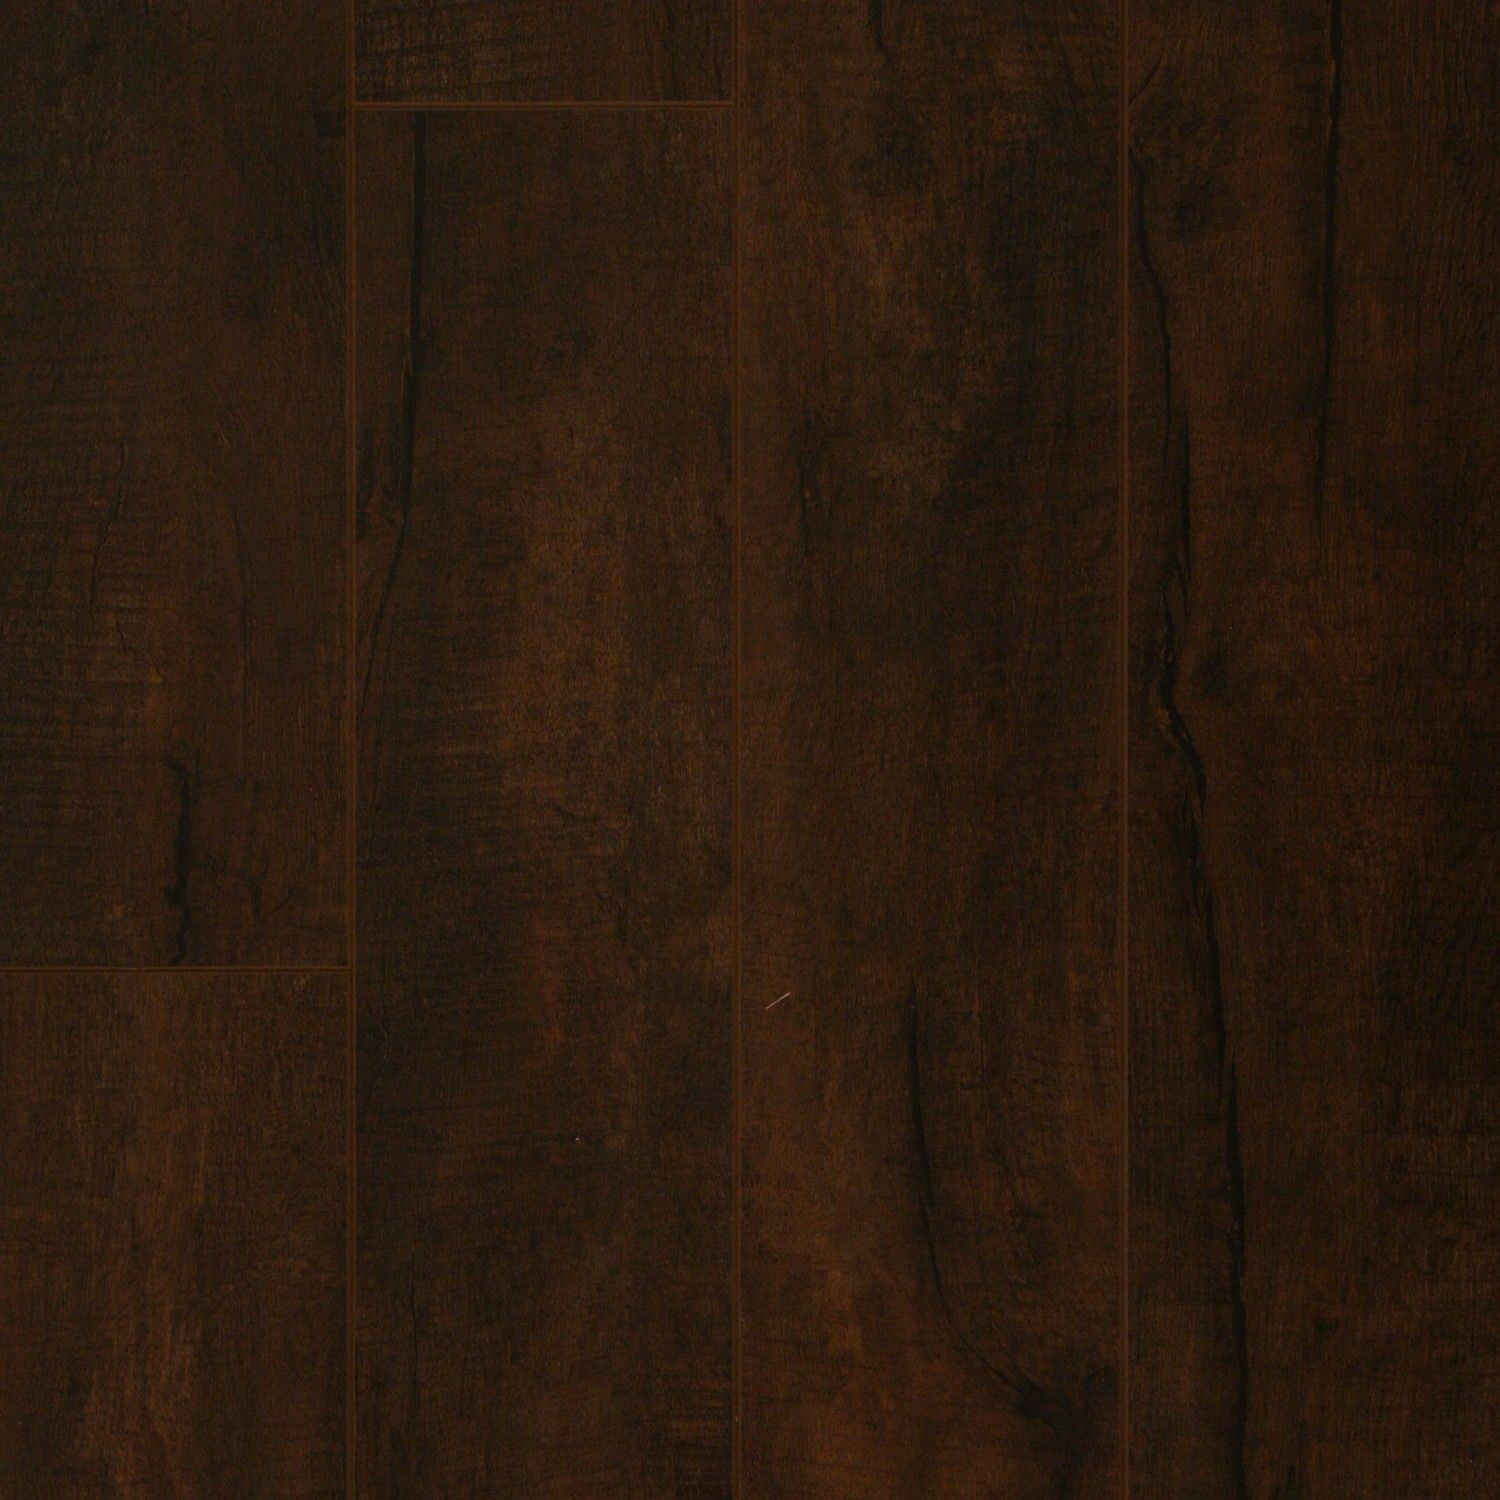 14 Lovable Cost Of Hand Scraped Hardwood Floors Installed 2021 free download cost of hand scraped hardwood floors installed of 18 new how much do hardwood floors cost image dizpos com inside how much do hardwood floors cost awesome home stock of 18 new how much do ha